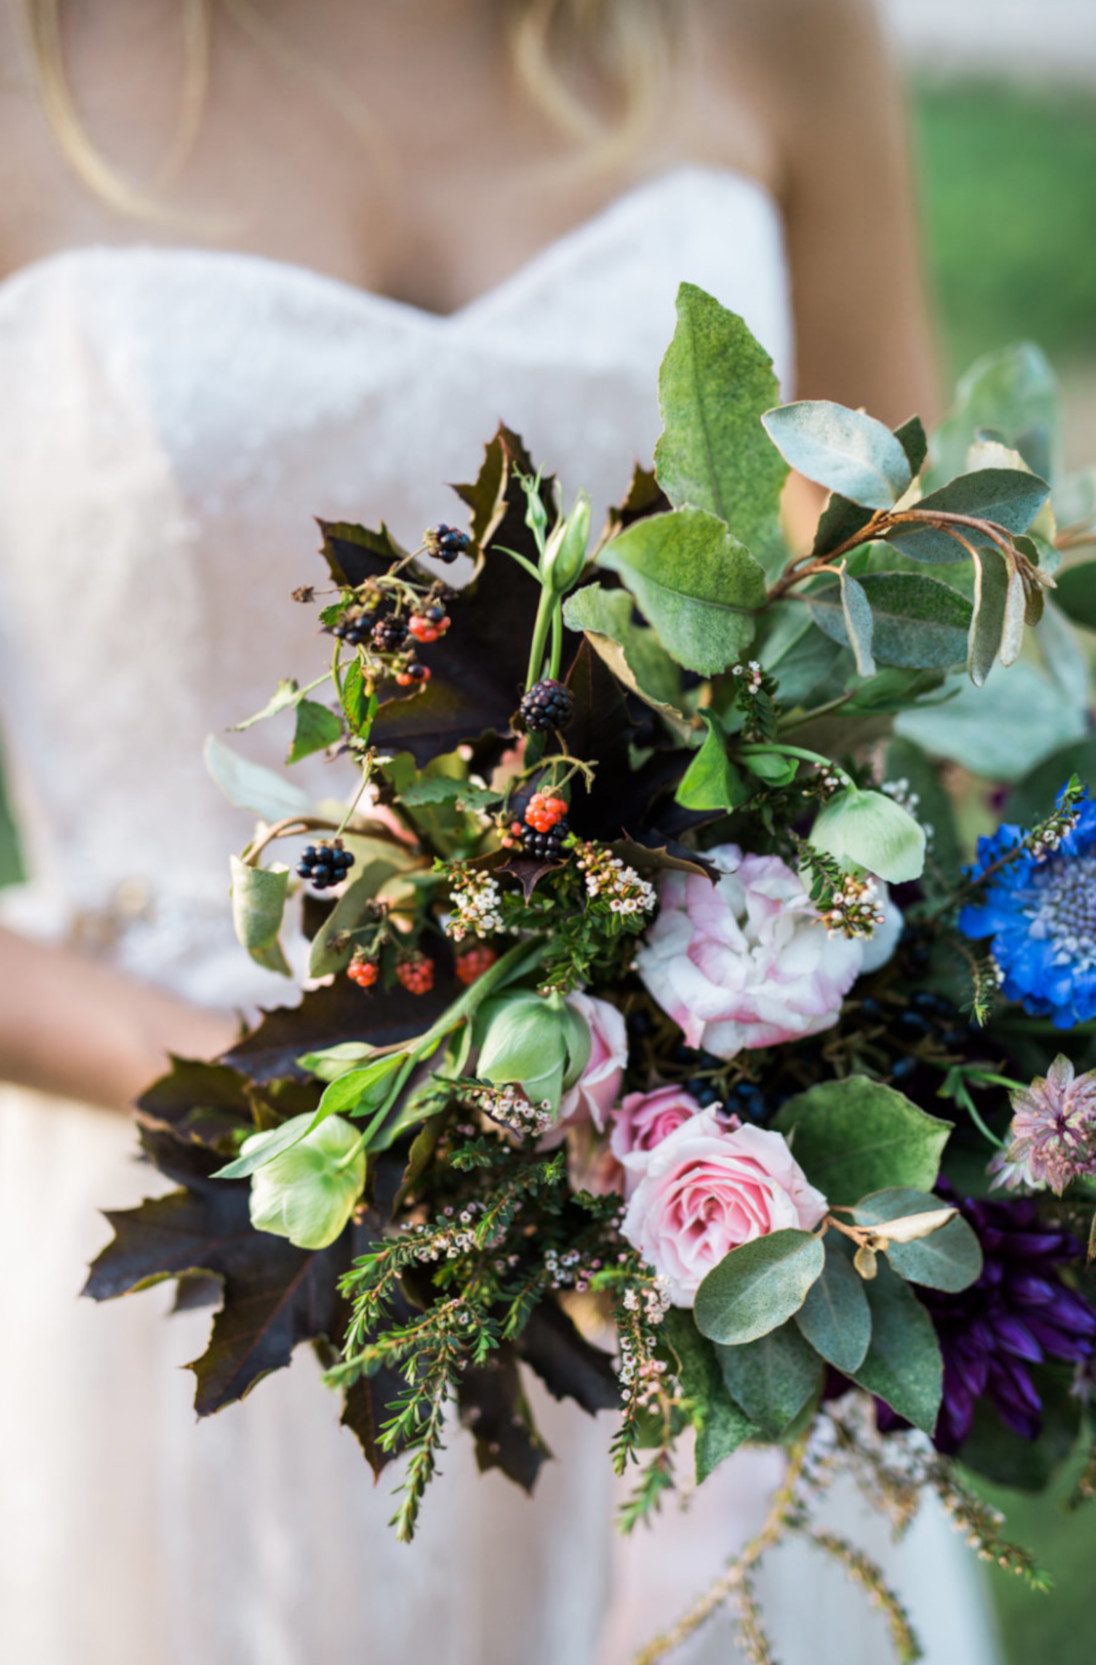 Choose Greenhouse Wedding Bouquets for Your Wedding